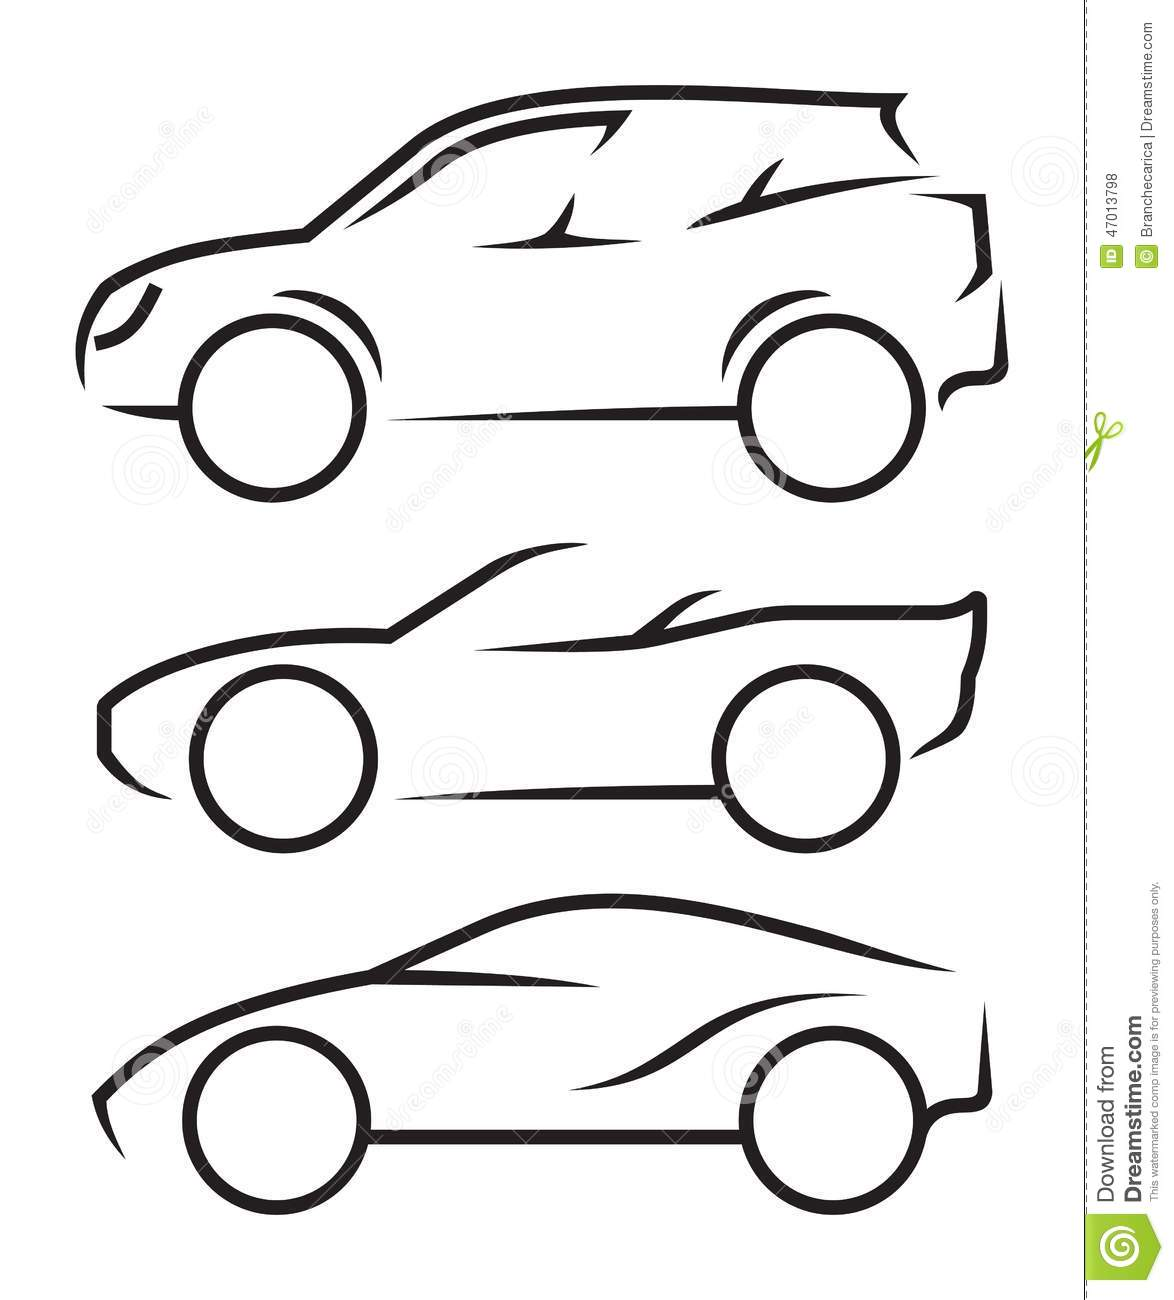 Vector Drawing Lines Html : Car line art stock vector image